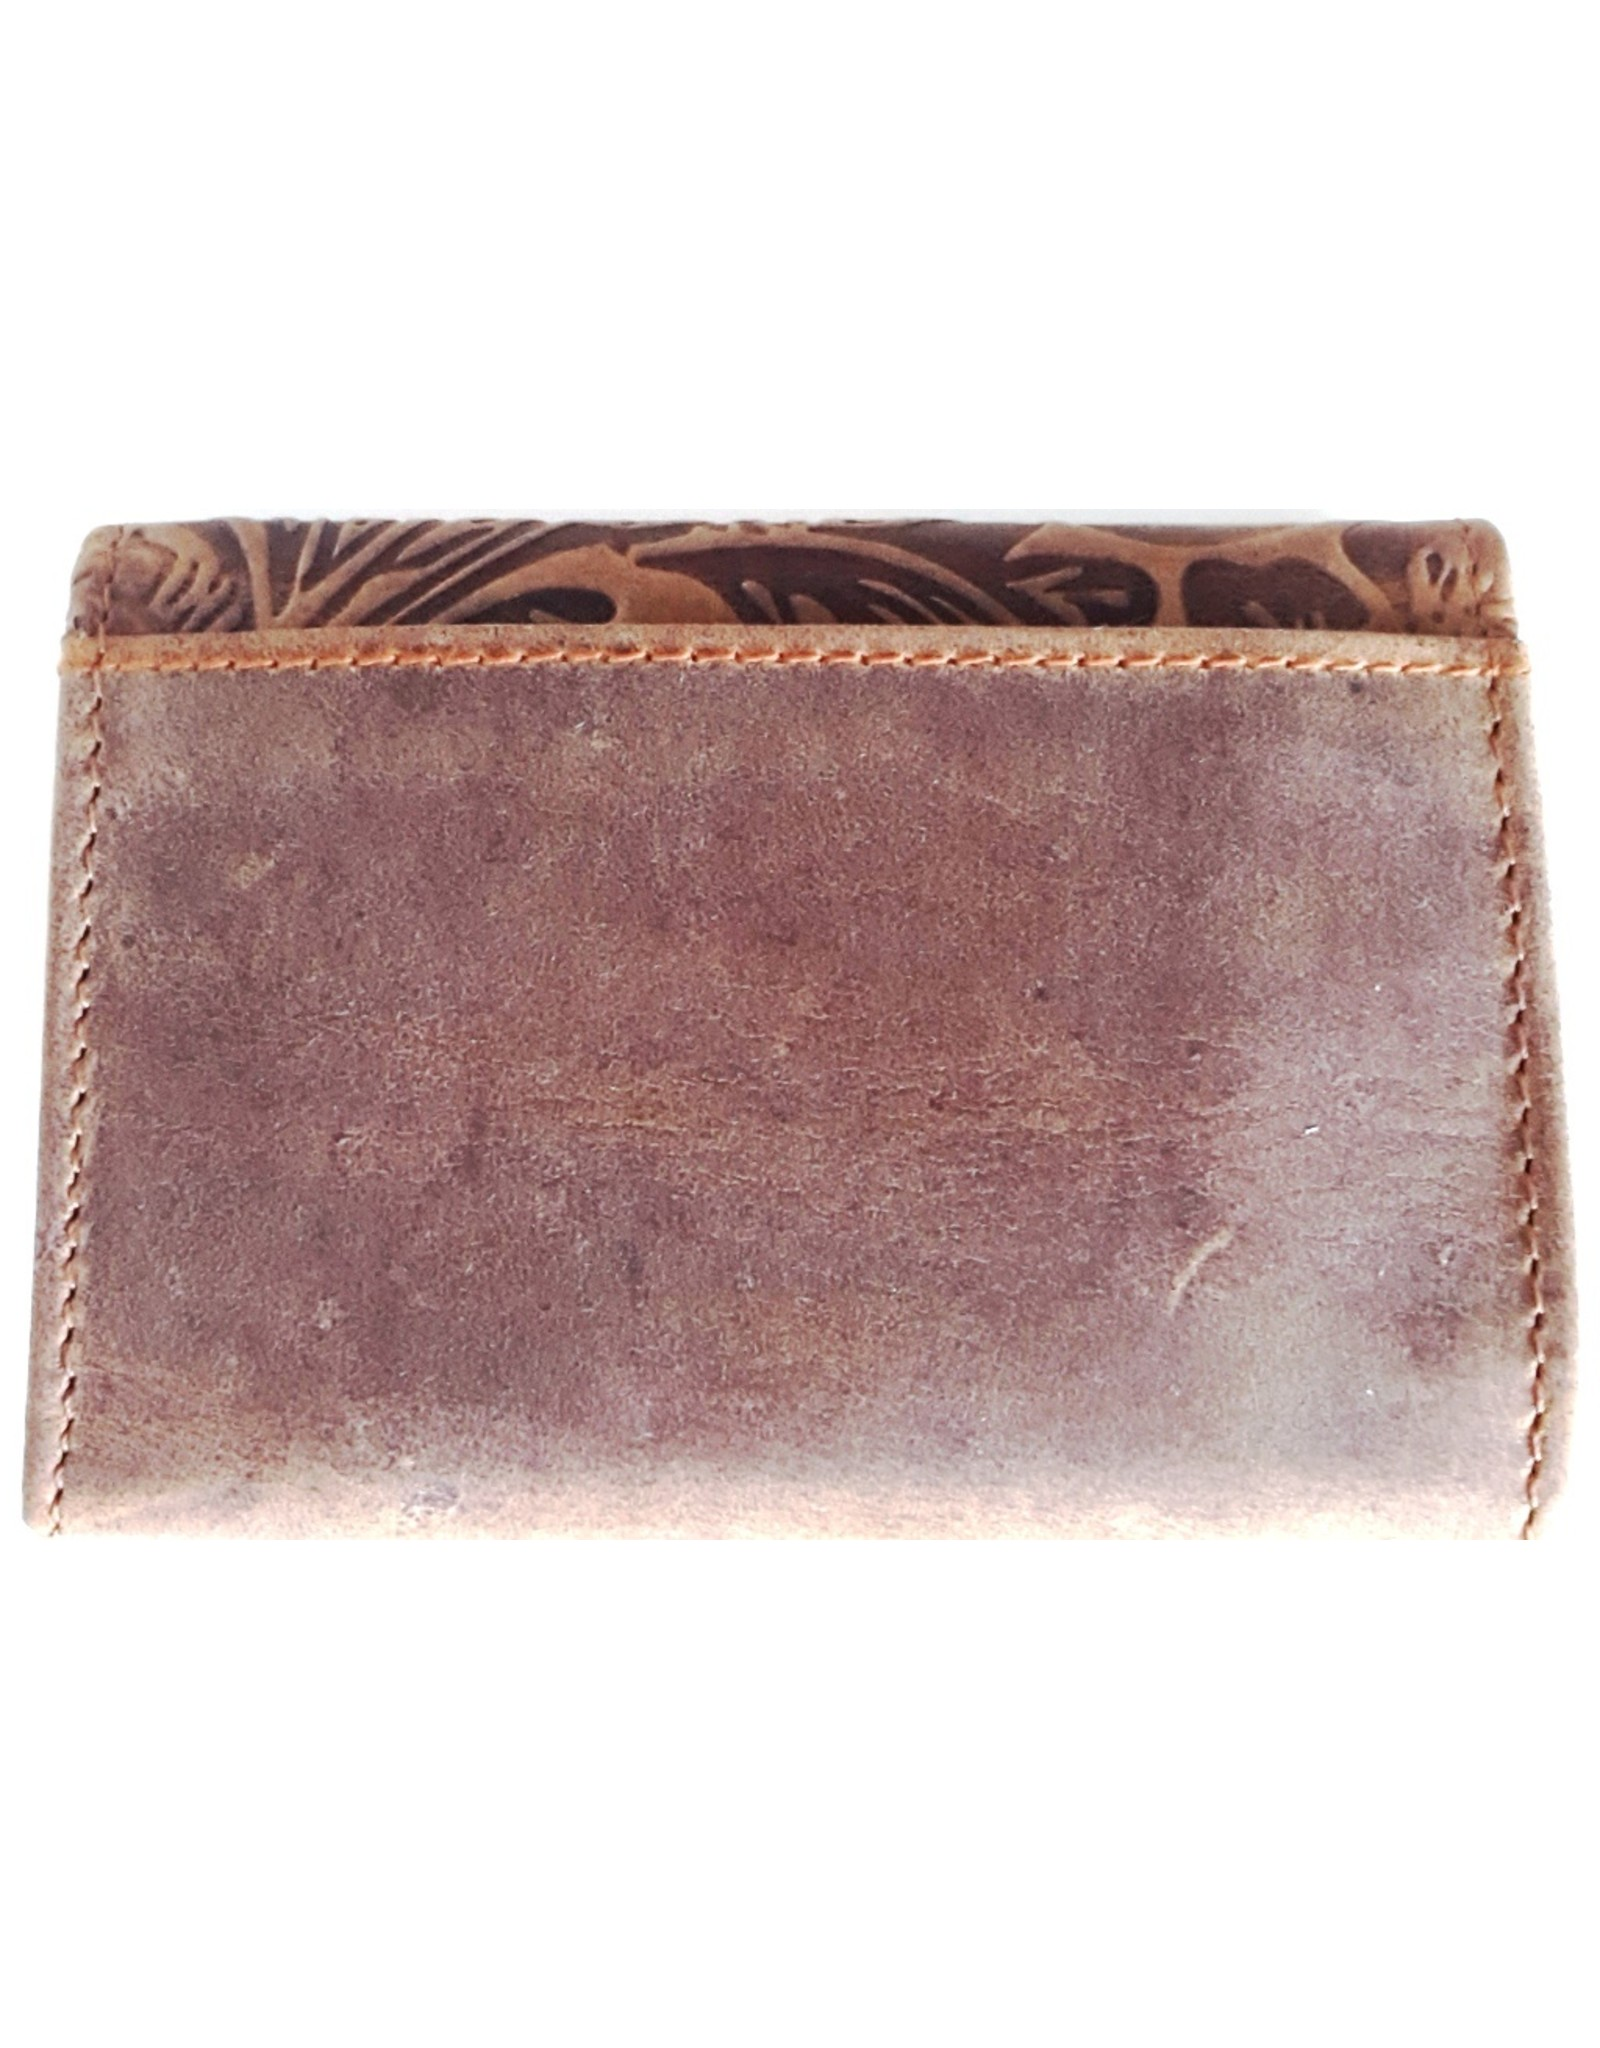 Hutmann Leather Wallets - Leather mini wallet with embossed flowers cover